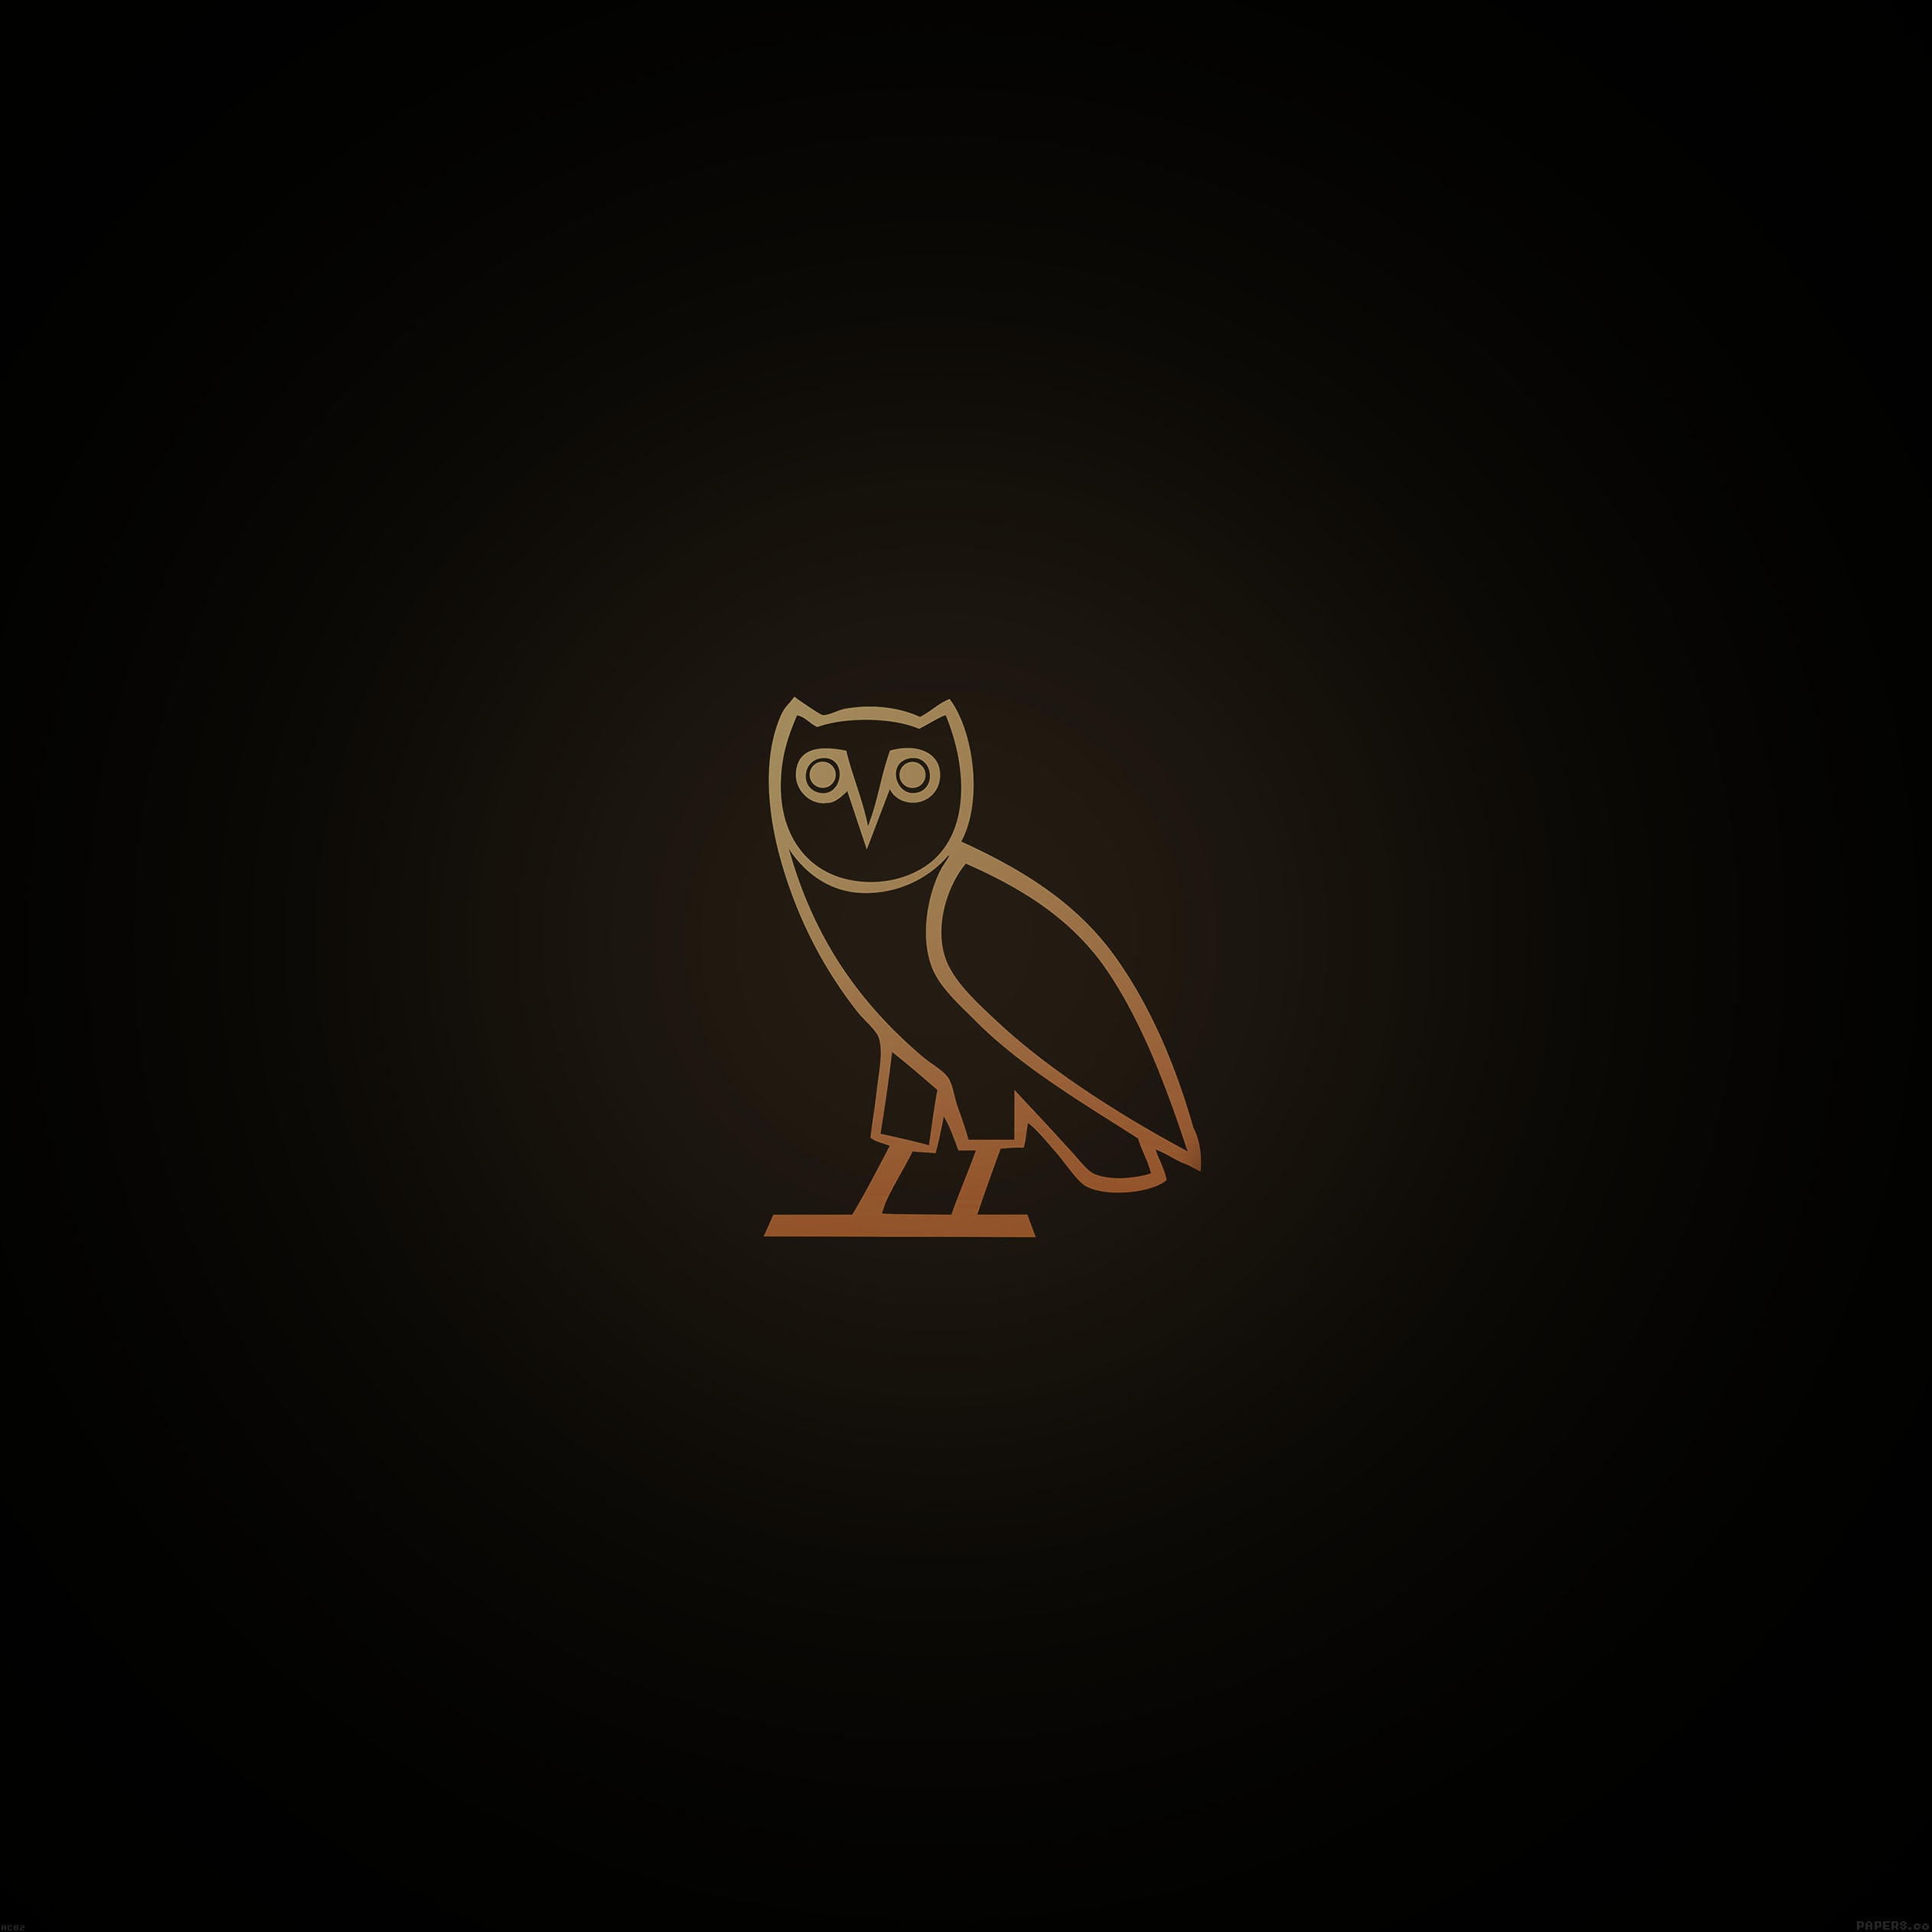 owl wallpaper iphone 5c